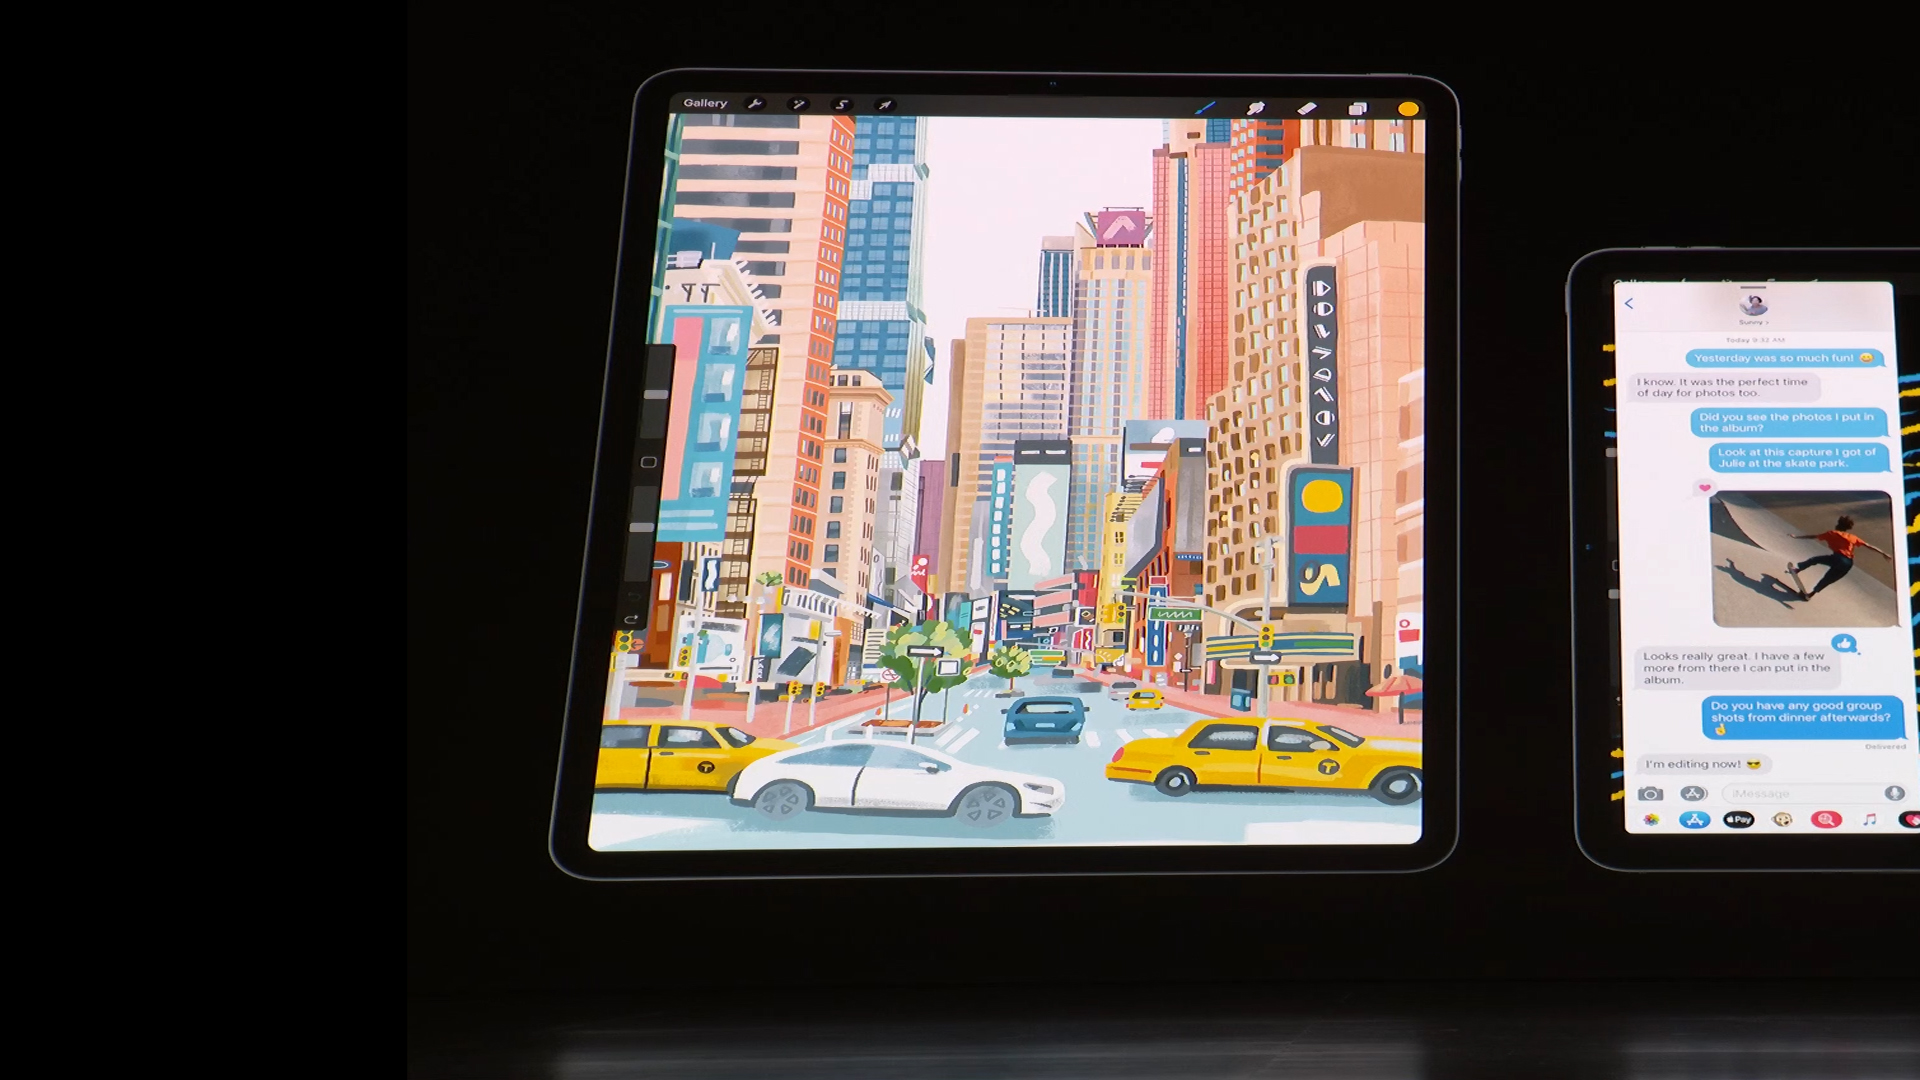 iPad Pro 2018: specifiche tecniche e prezzo